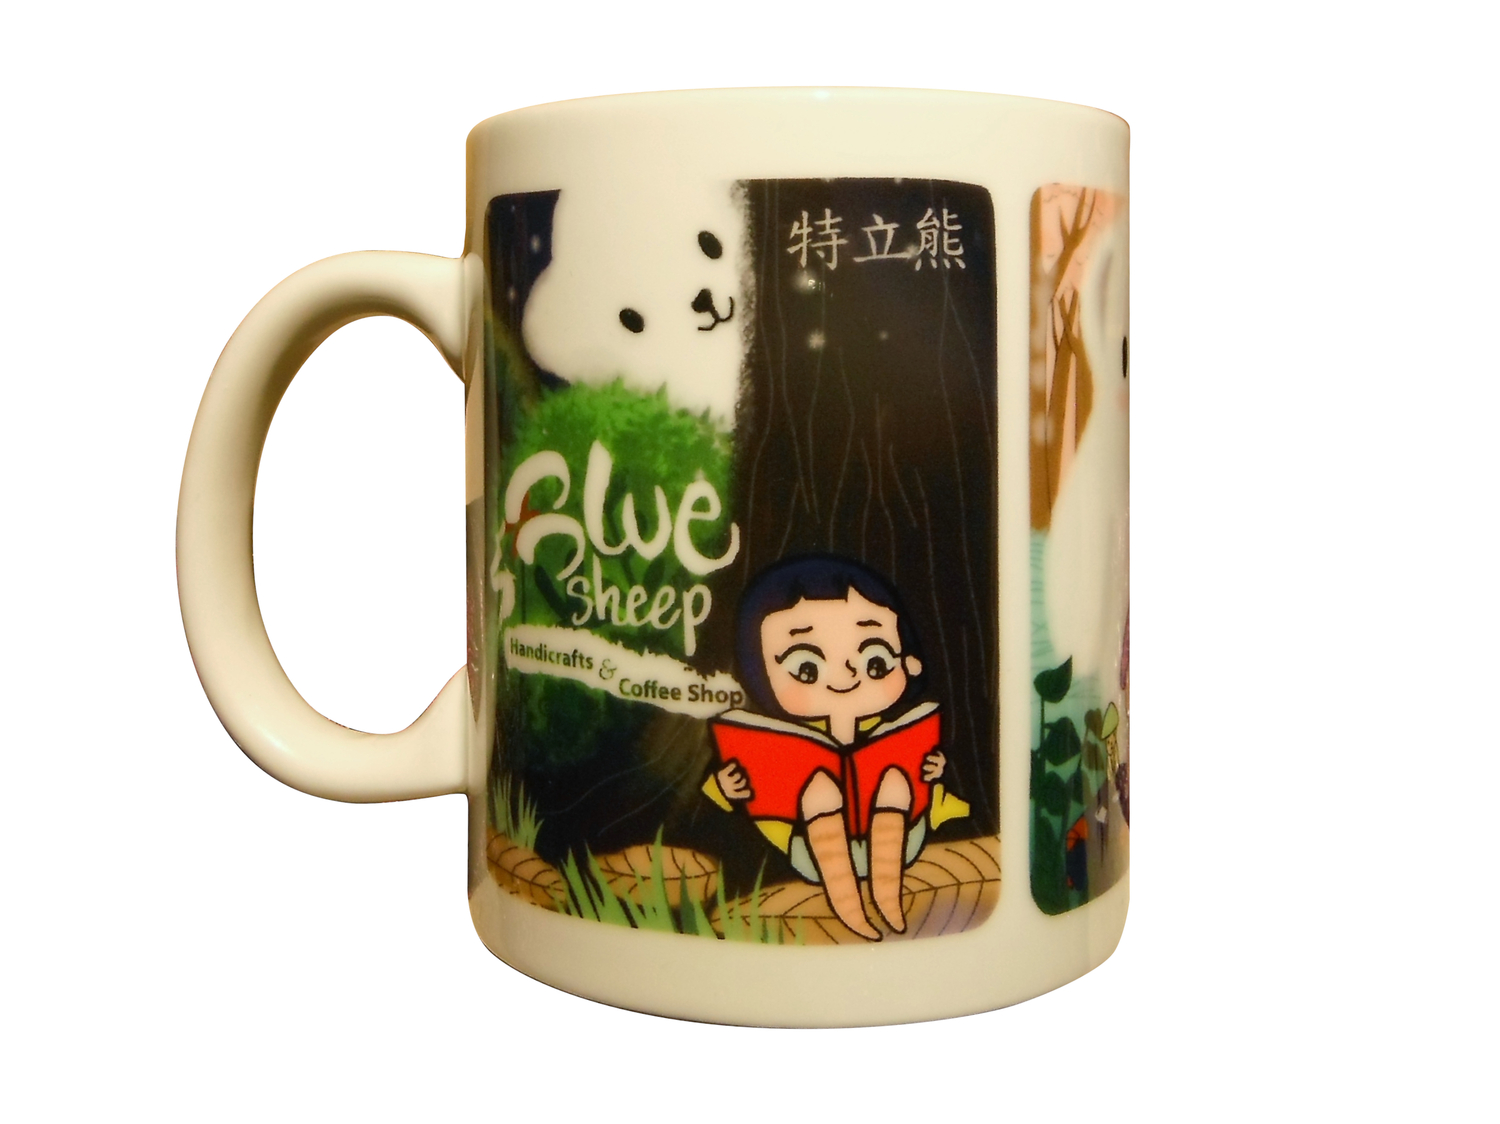 <p>New Blue Sheep Mug by SY!</p>